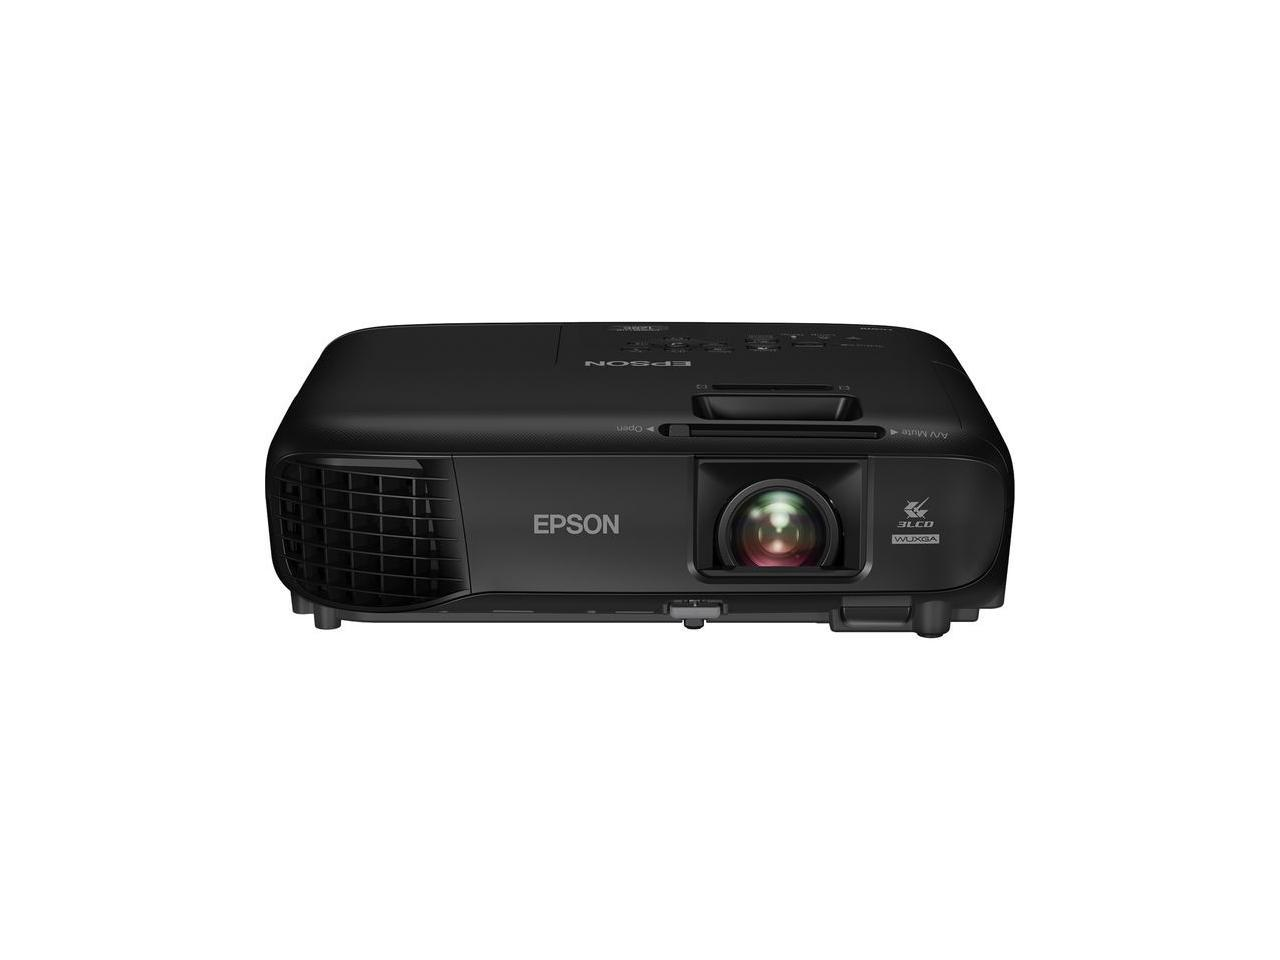 EPSON-PowerLite-1286-Wireless-WUXGA-3LCD-Projector-3600-Lumens-1920-x-1200-1-07 miniature 3